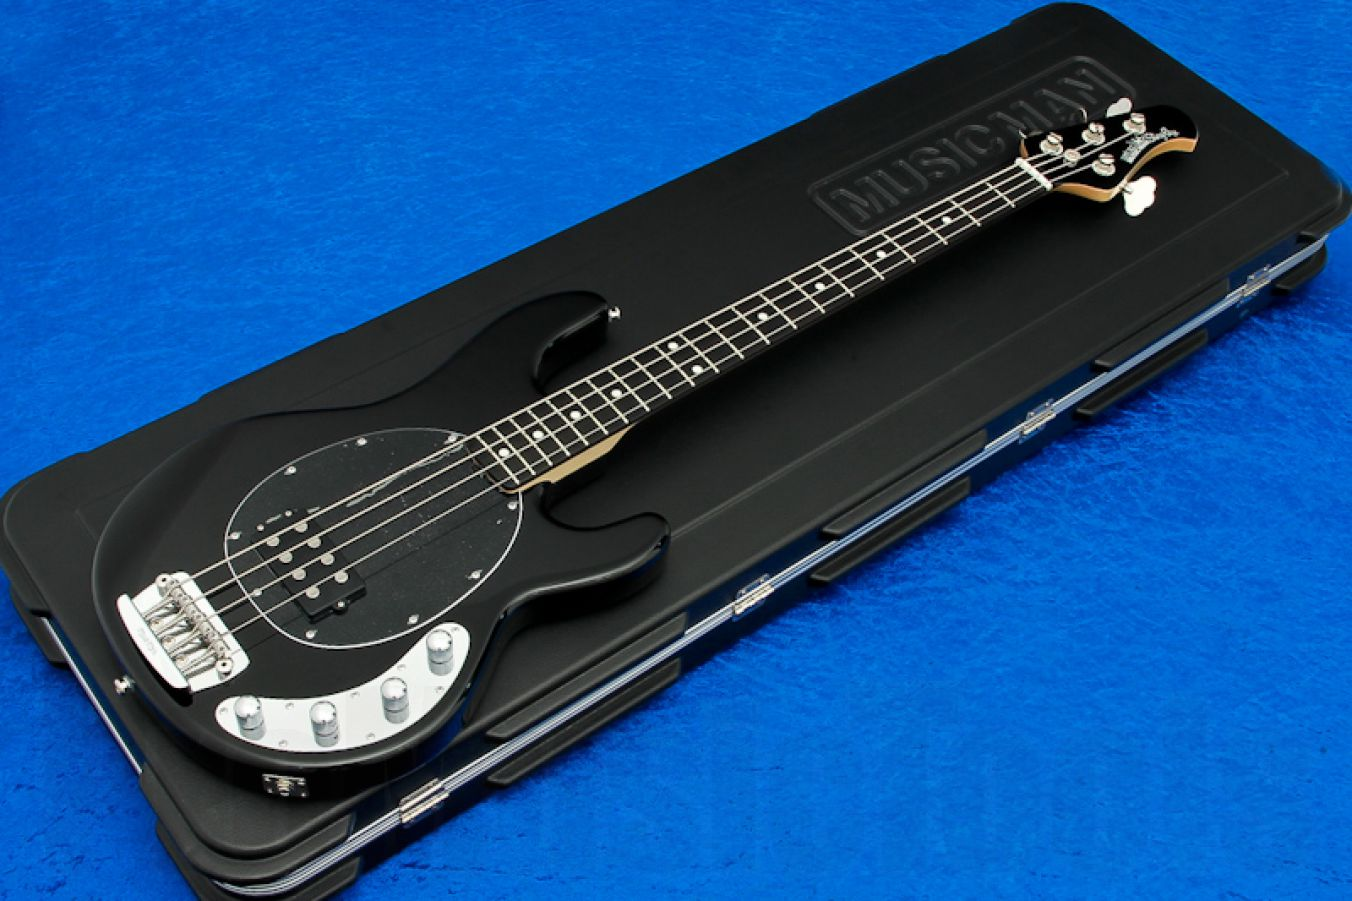 Music Man USA Stingray 4 BK - Black MH - Ebony Limited Edition